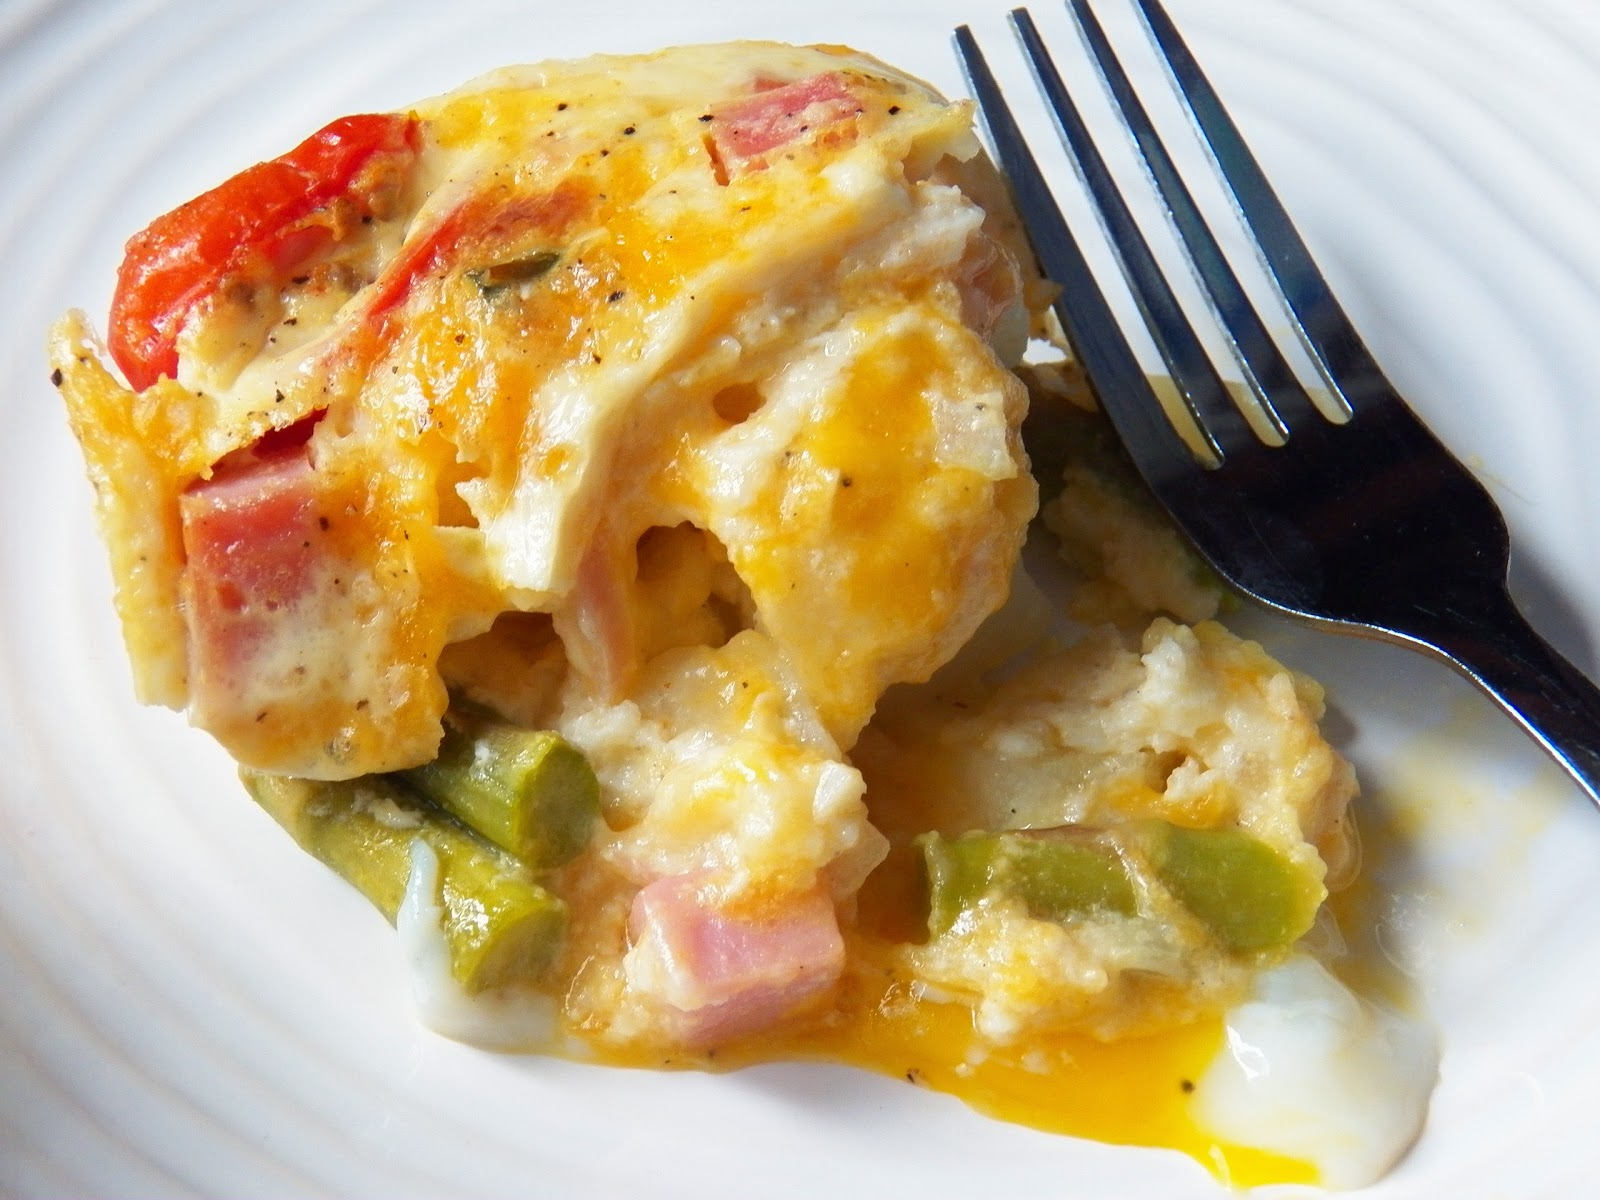 Egg Ham and Asparagus Breakfast Bake,a serving on a white plate